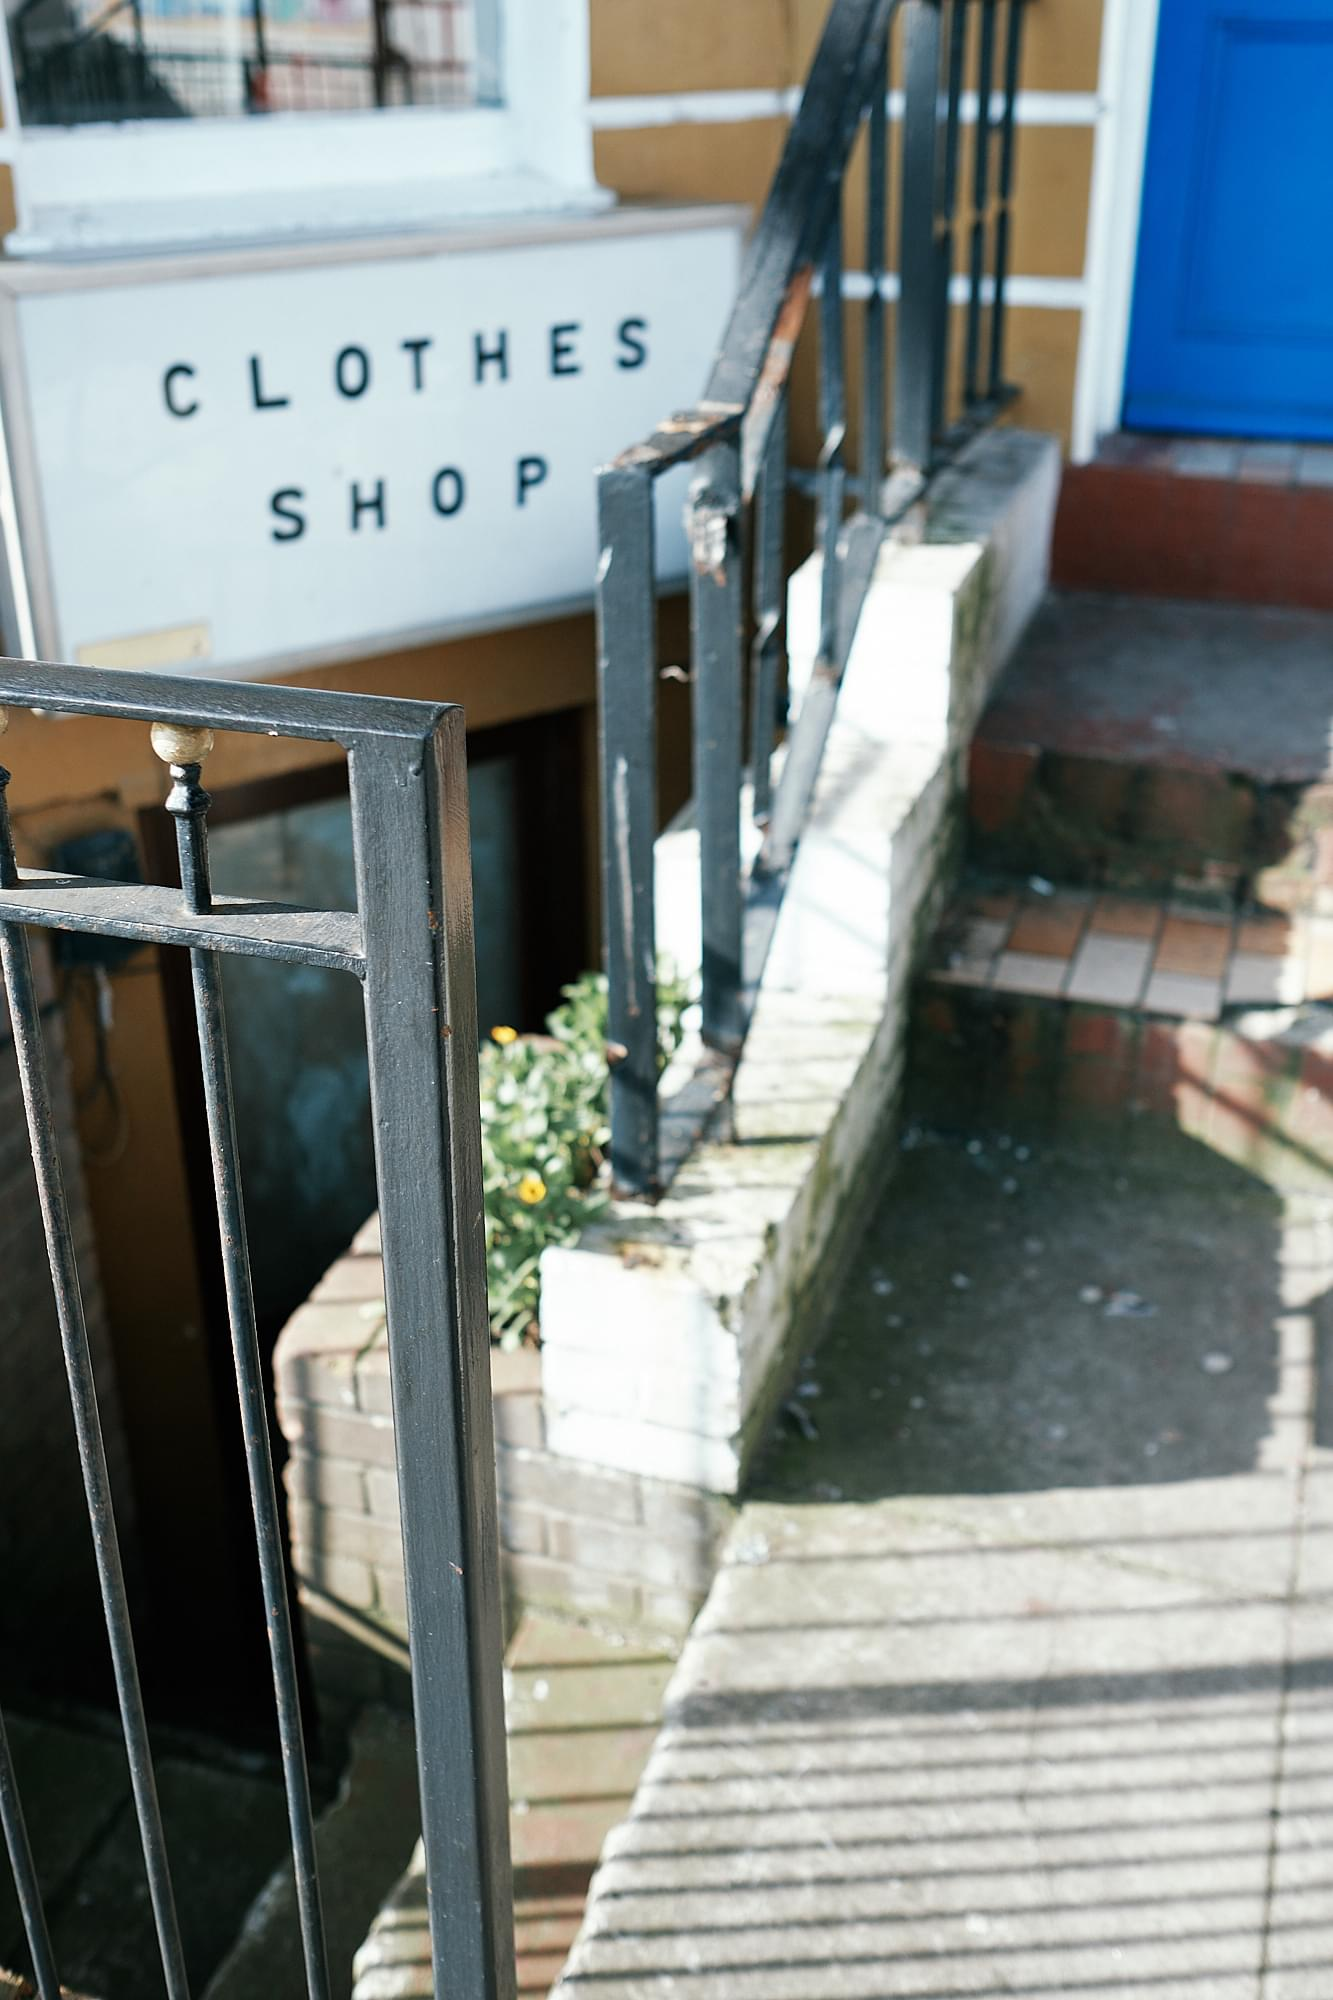 downstairs clothes shop